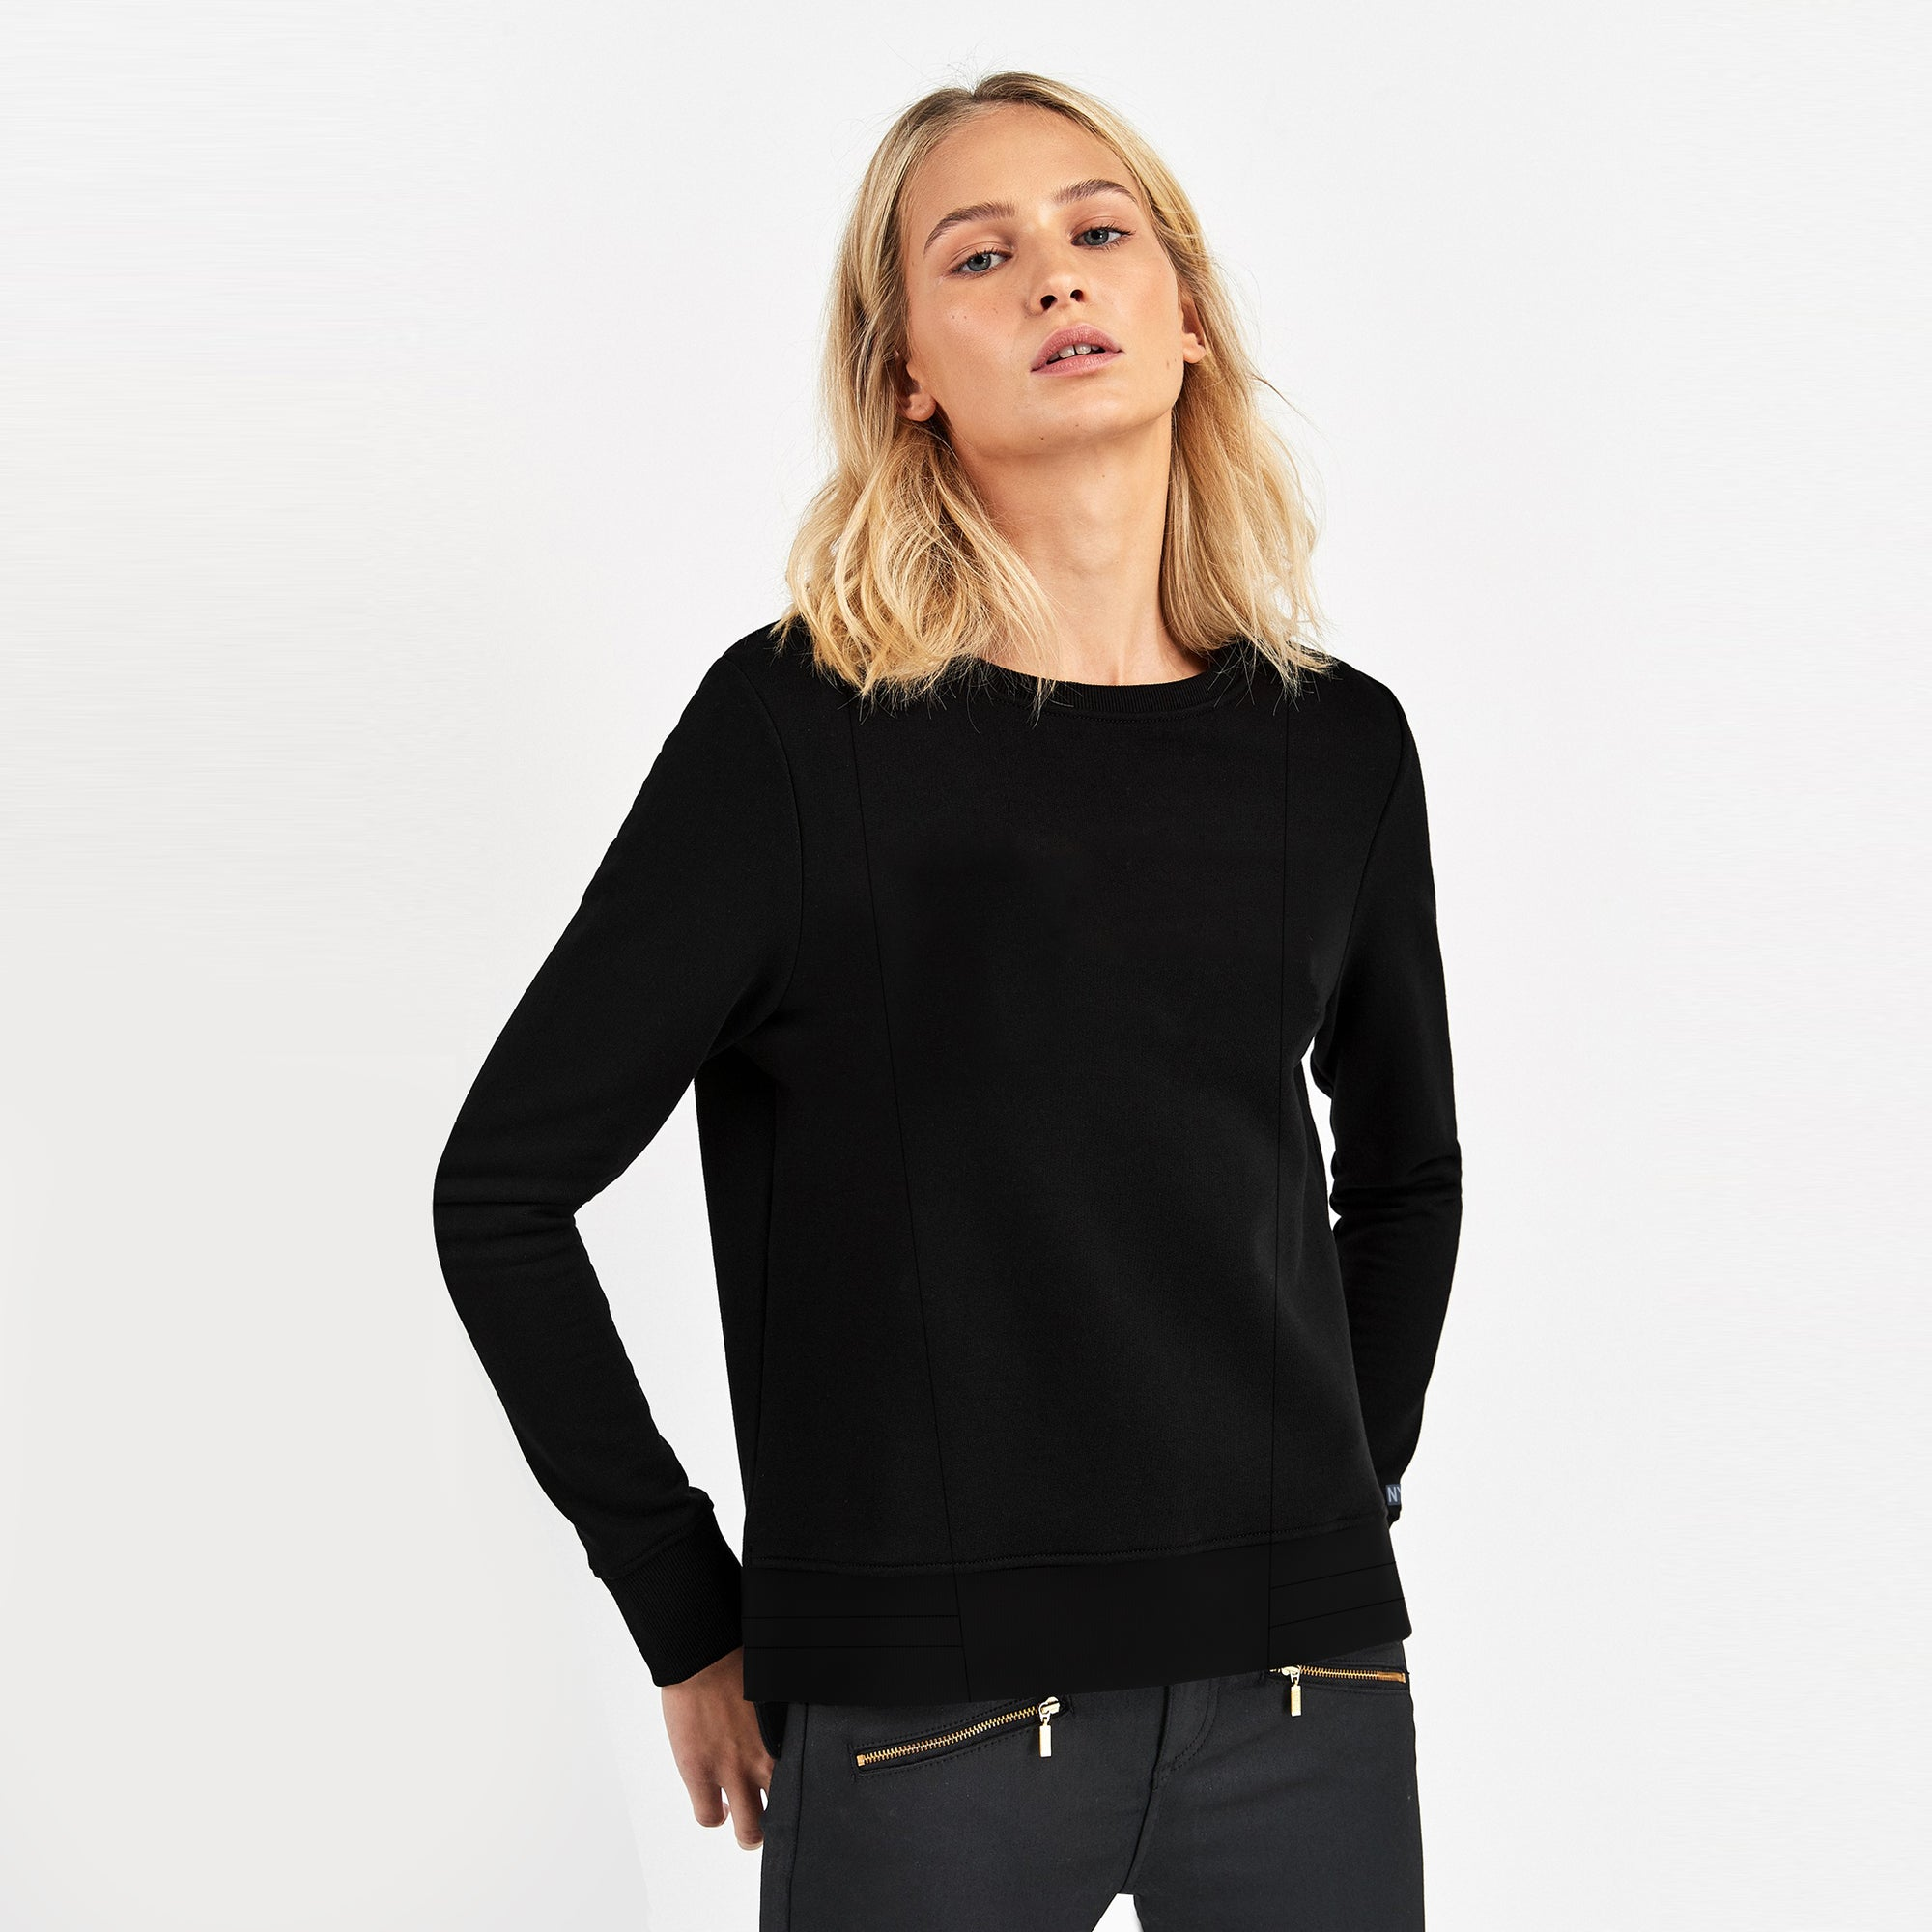 Nyc Polo Terry Fleece Crew Neck Sweatshirt For Ladies-Black-SP1150